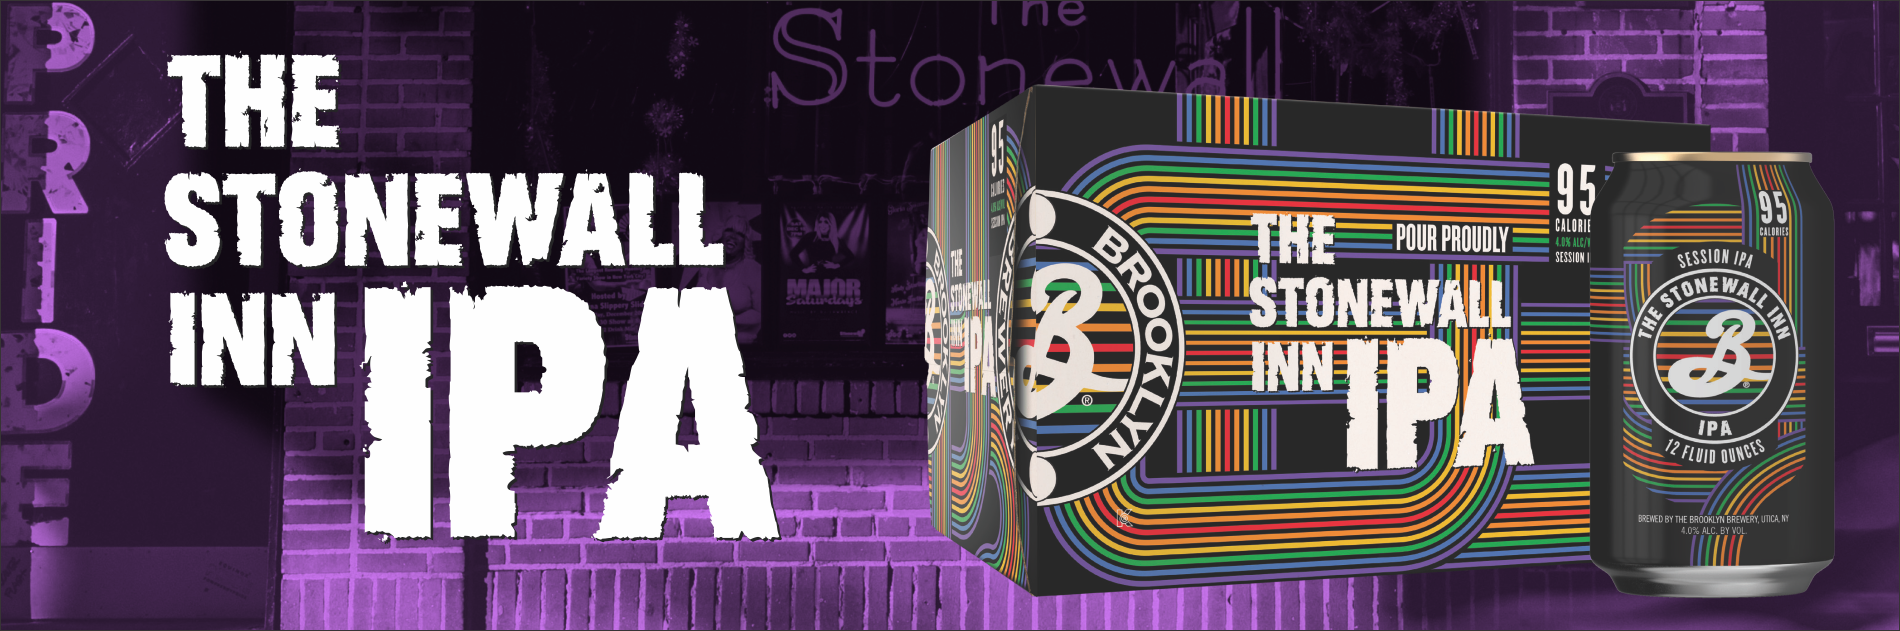 Pour Proudly: Brooklyn Brewery Stonewall Inn IPA